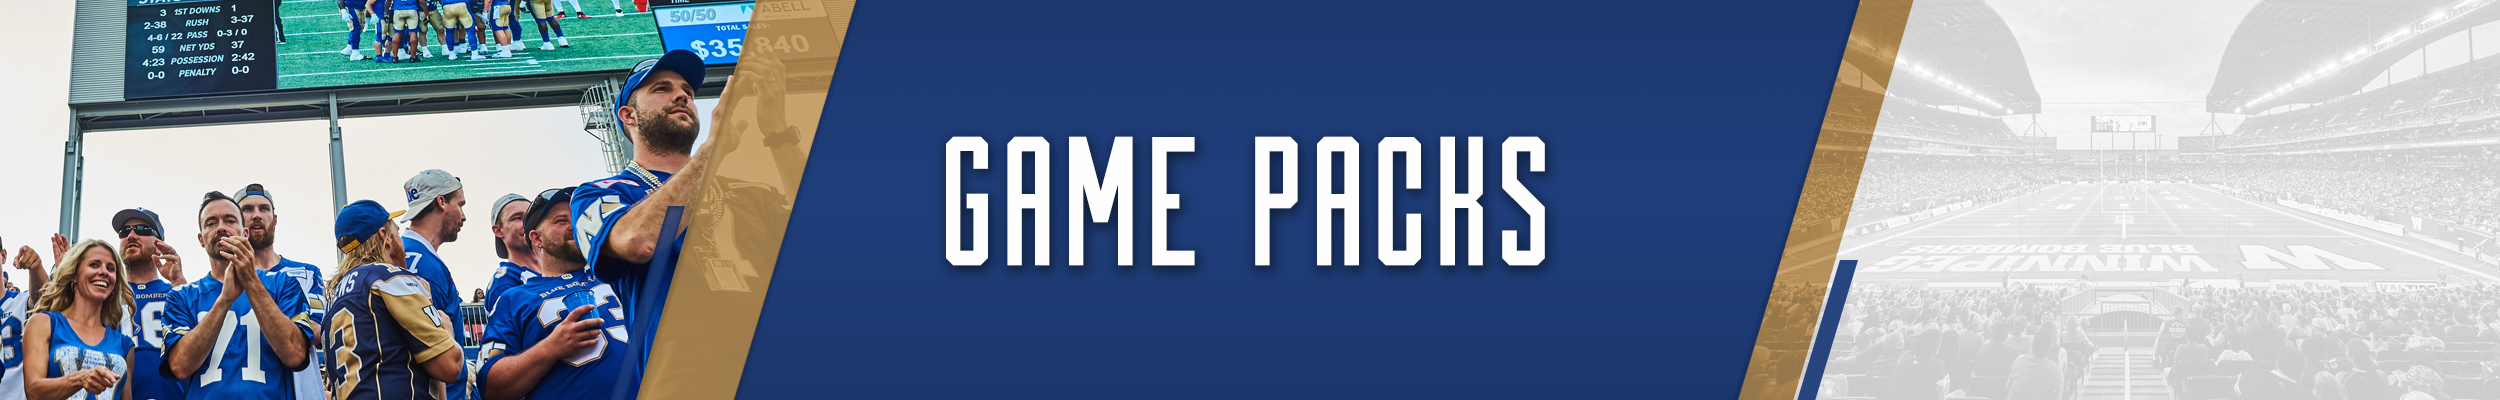 Winnipeg Blue Bombers Game Packs